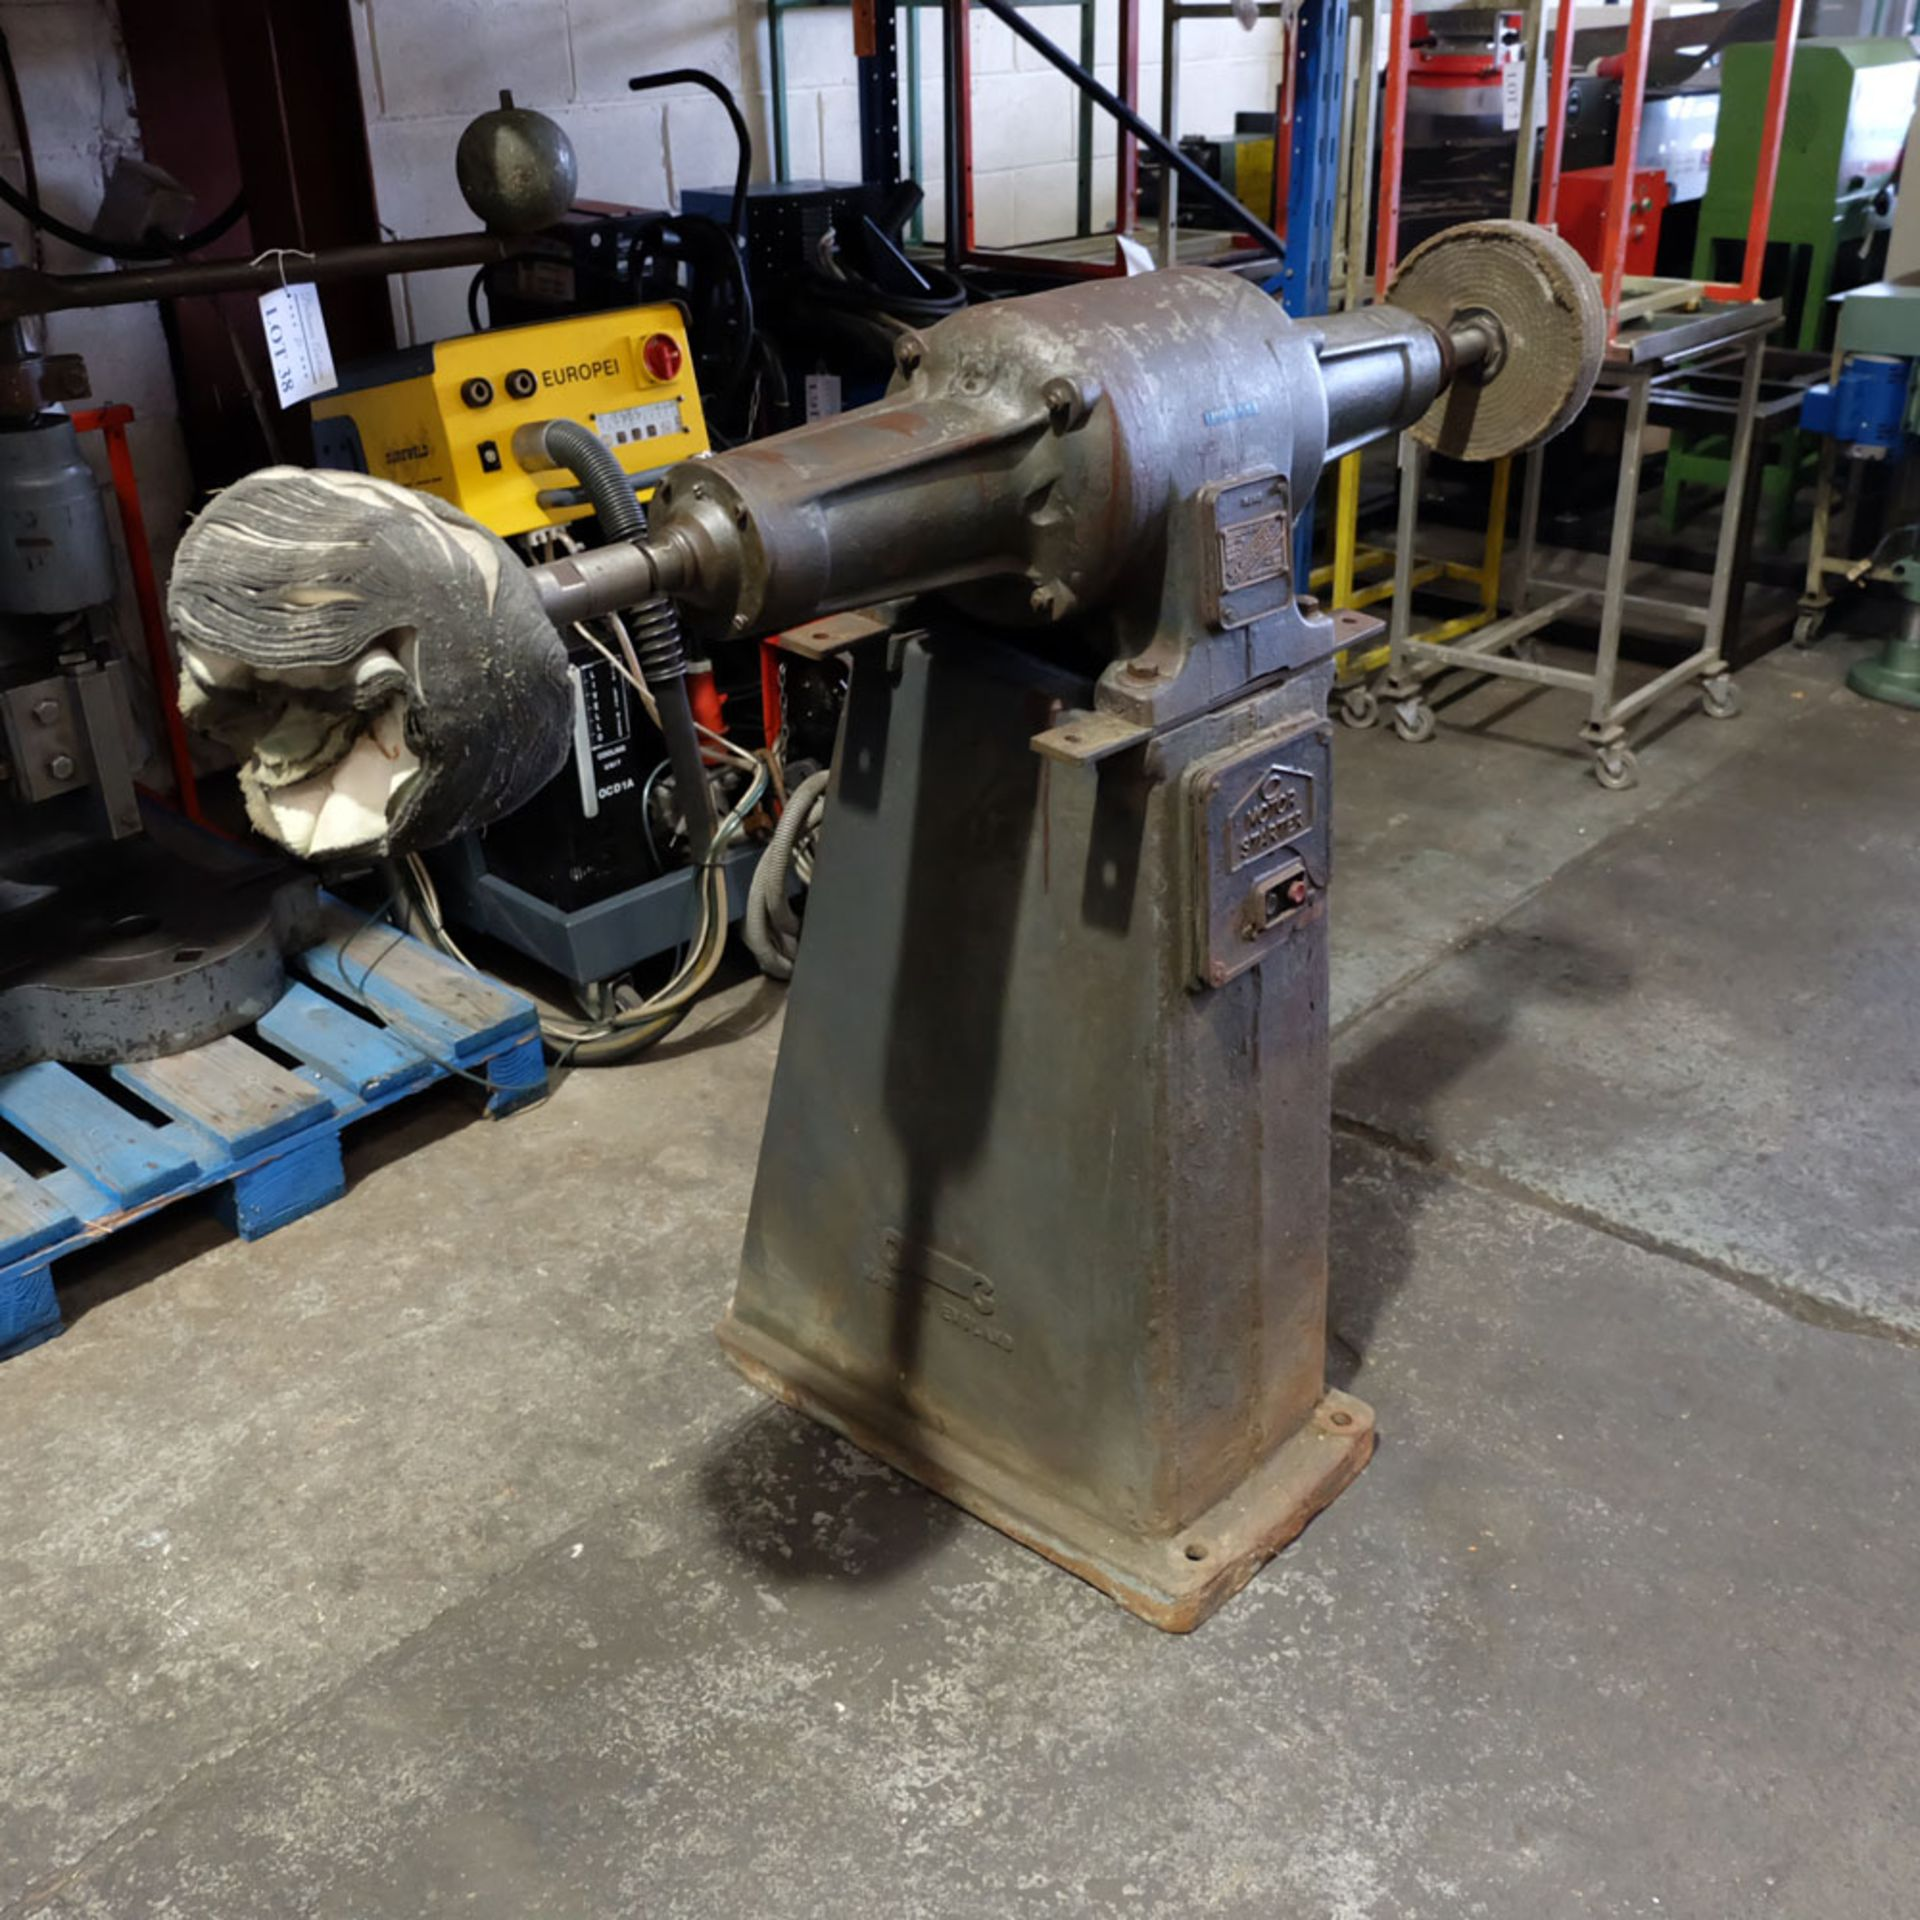 Canning Type 16/12 Double Ended Pedestal Polishing Machine. 2870rpm. - Image 2 of 6